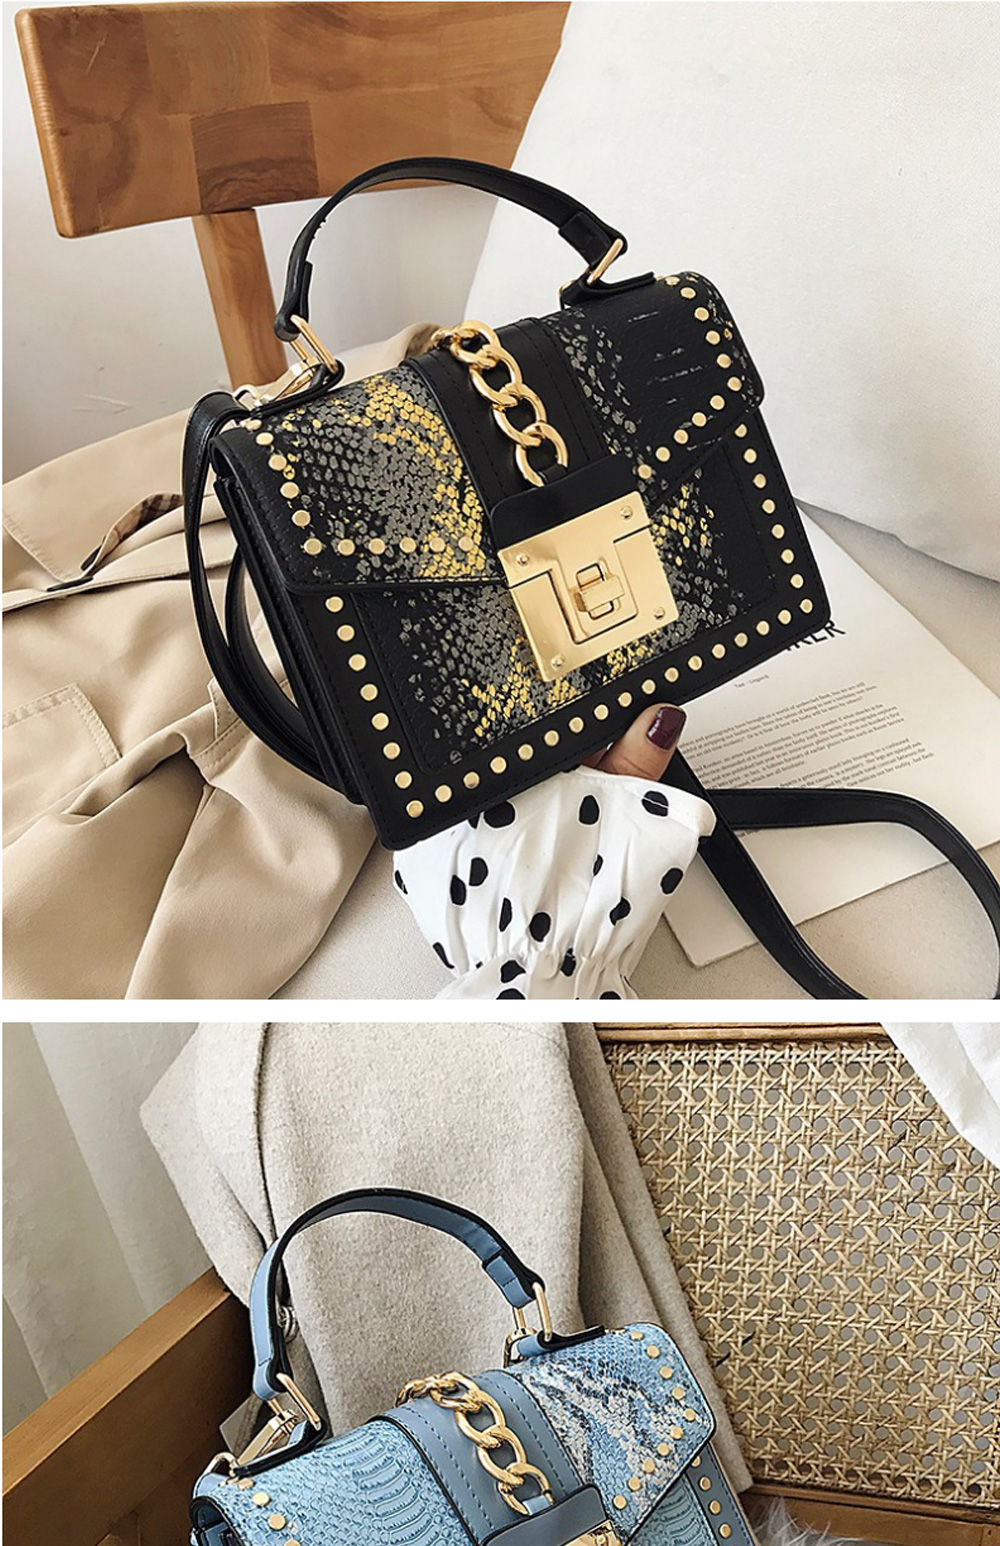 Fashion Snake Pattern Portable Small Female Bag 2020 New European And American Personality Atmospheric Messenger Shoulder Bag Wild Small Square Bag  2